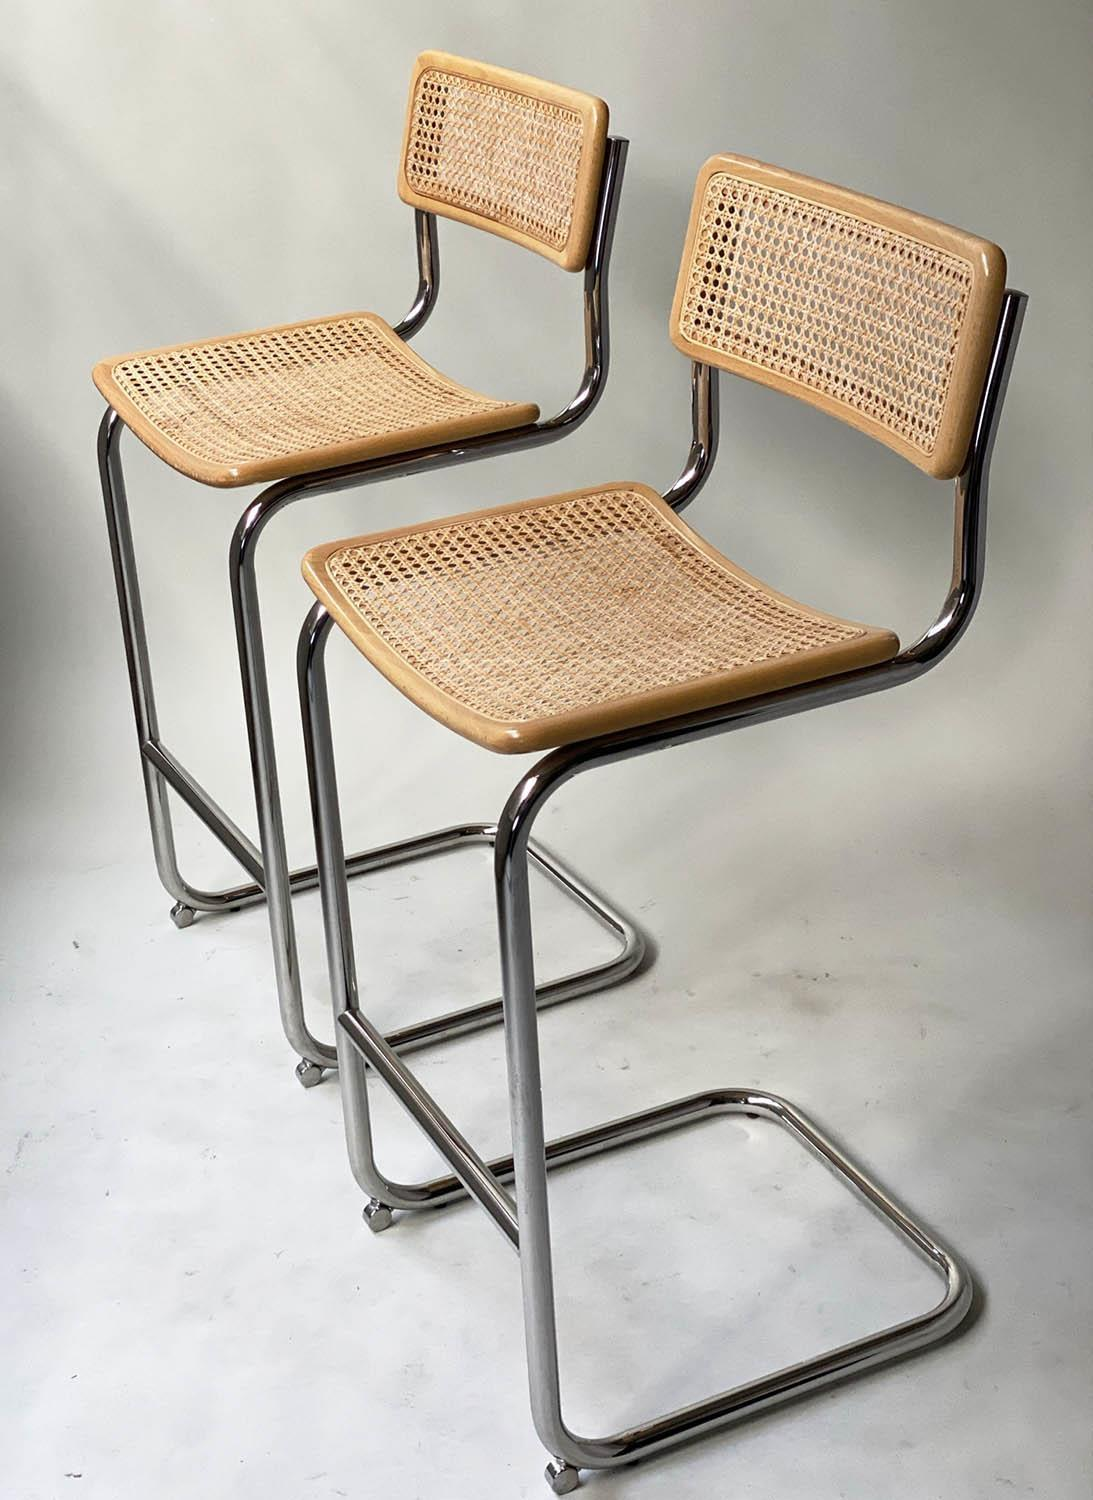 MARCEL BREUER INSPIRED BAR CHAIRS, a pair, Cesca style design, beechwood, cane panelled and chrome - Image 7 of 7